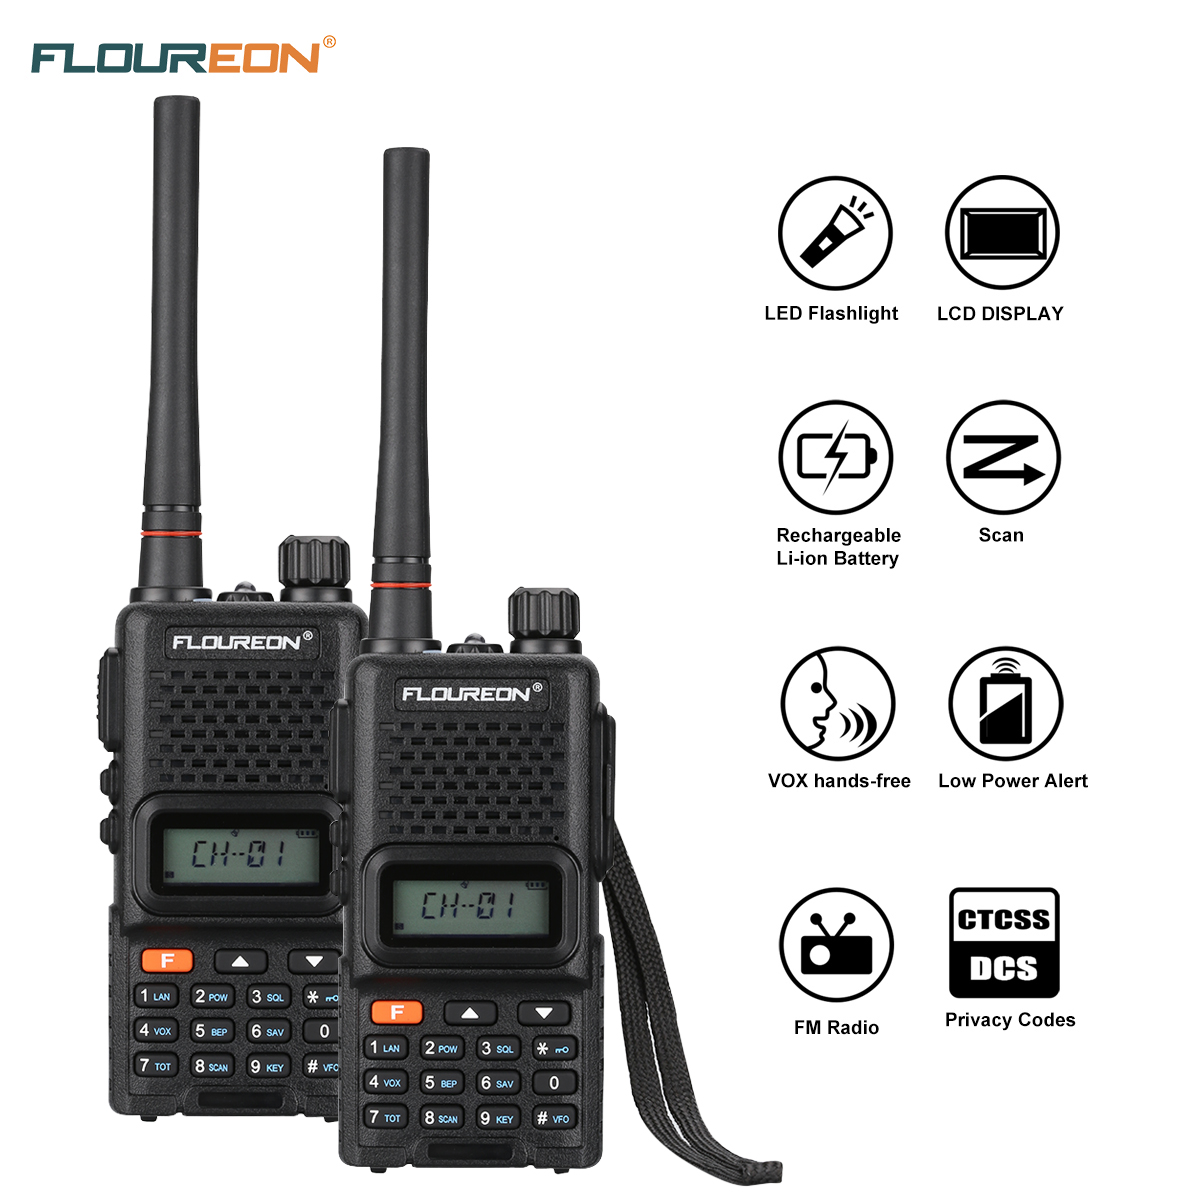 FLOUREON Walkie Talkies 99 Channel Handheld Wireless Phone 2 Way Radio 7 Miles for Supermarket Adults Kids NERF - 2Packs